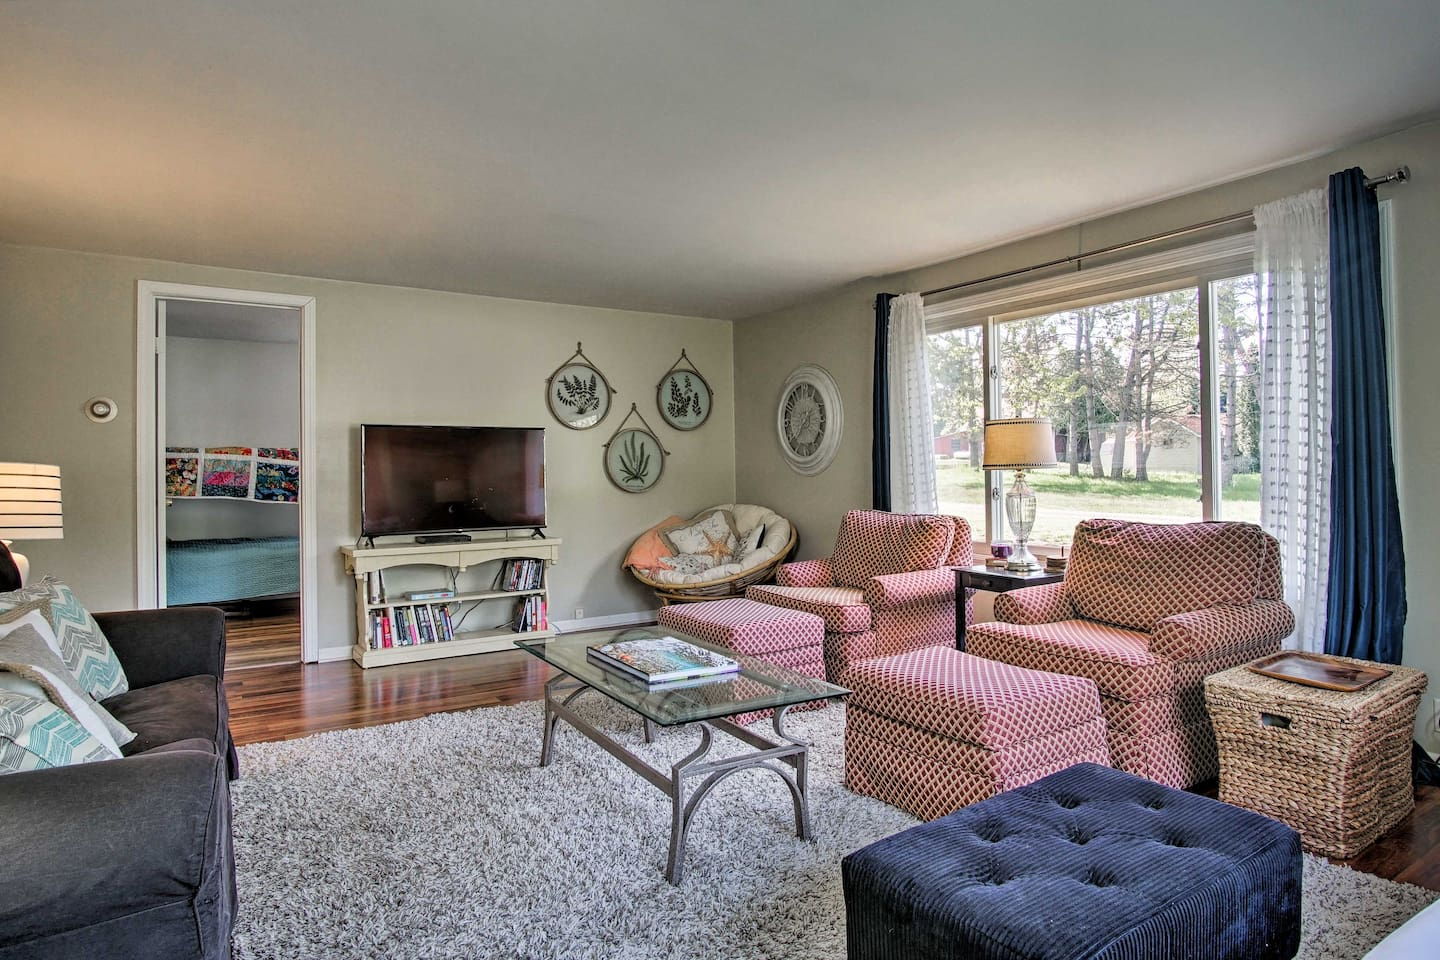 Your family Lake Michigan getaway begins by booking this updated vacation home.